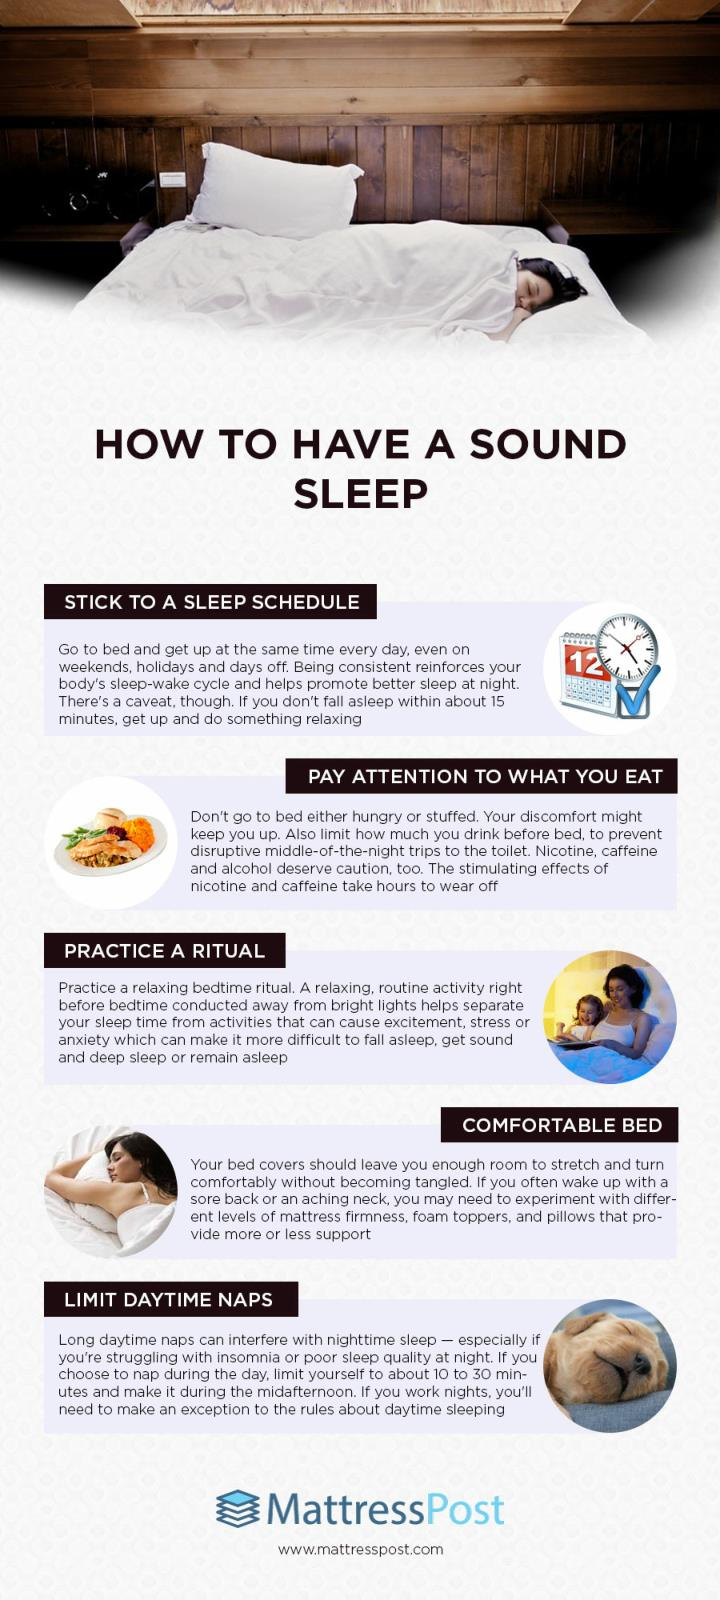 How to have a sound sleep